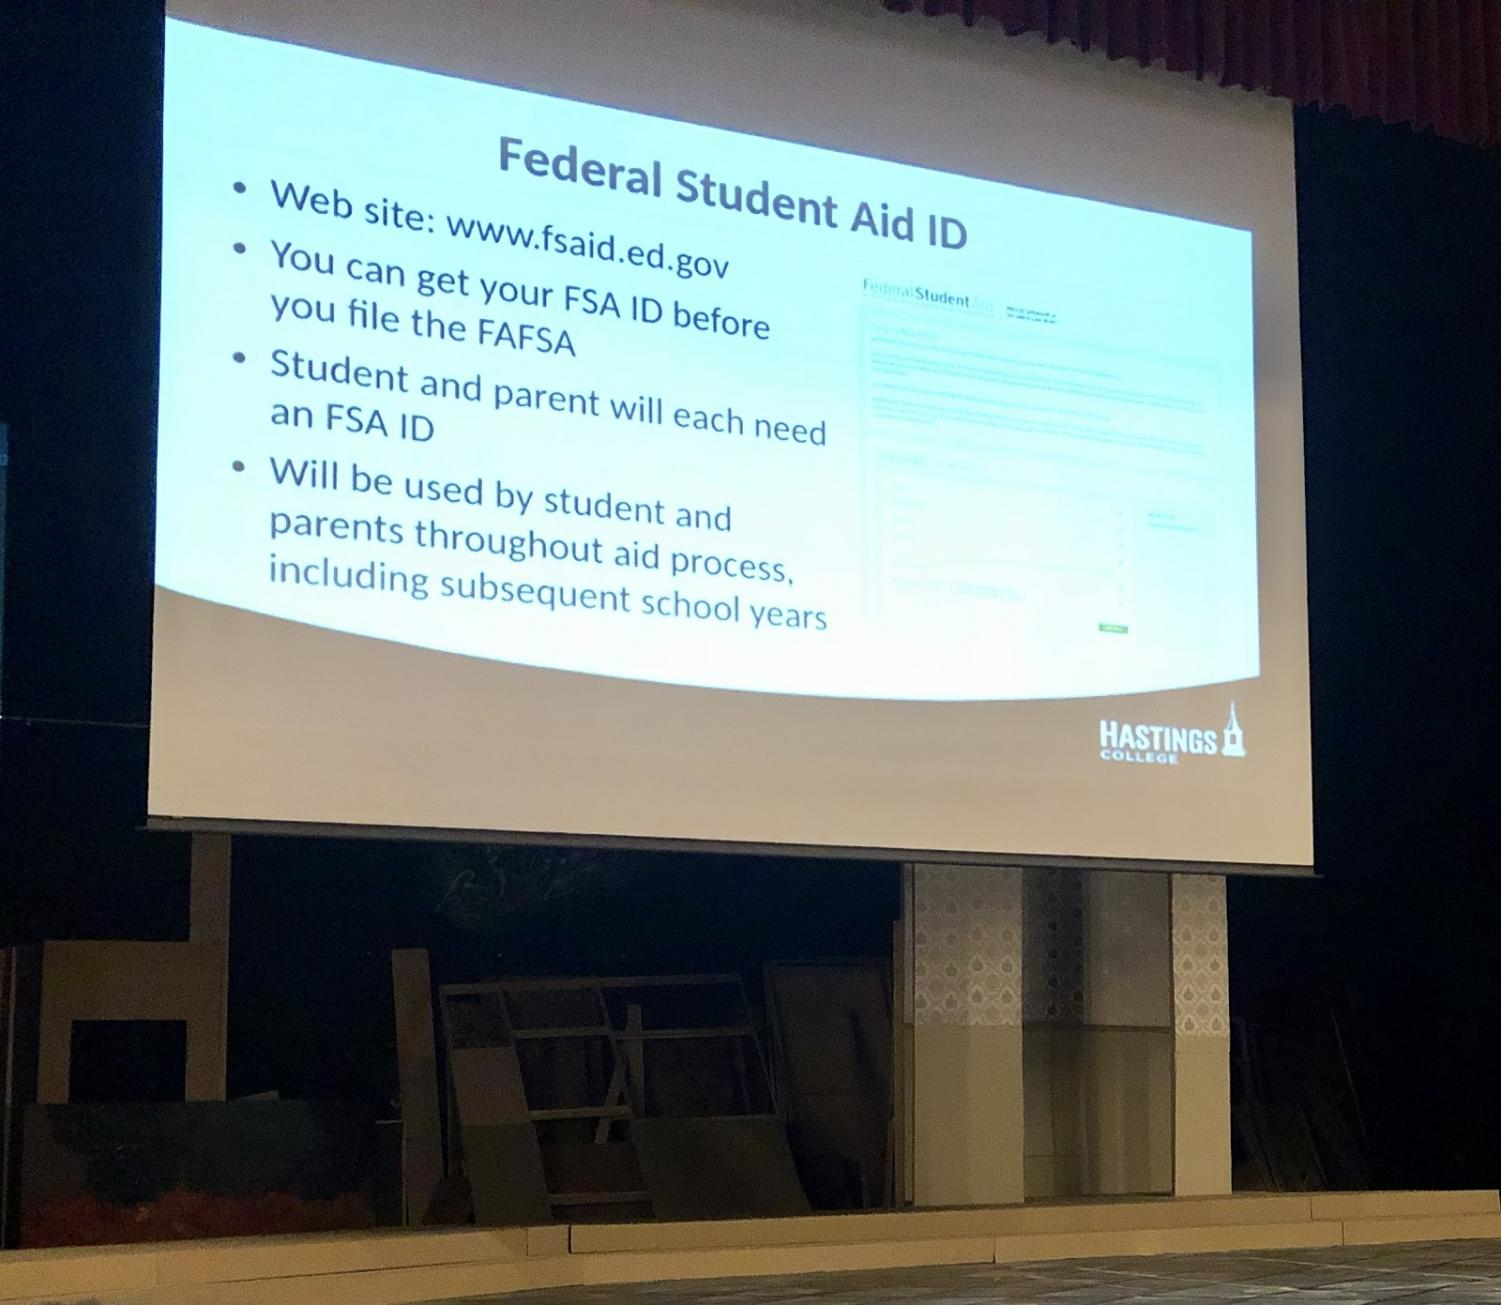 FAFSA requires an FSA, or Federal Student Aid, ID in order to sign the FAFSA application online. Without the ID, the application will have to be manually signed by the student, which can take 6 weeks to a month to complete.